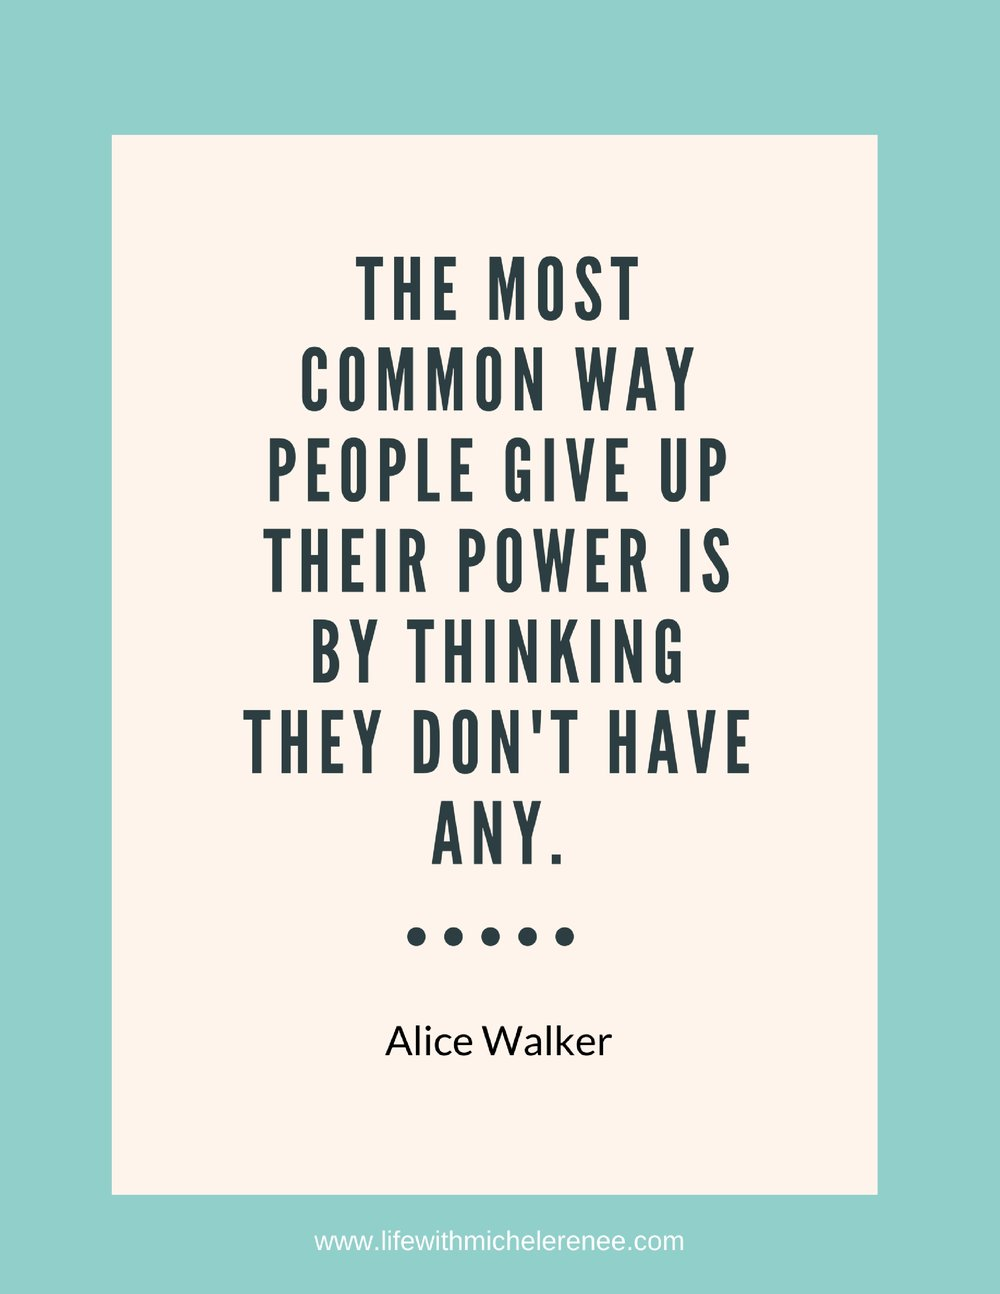 Alice Walker quote (1).jpg